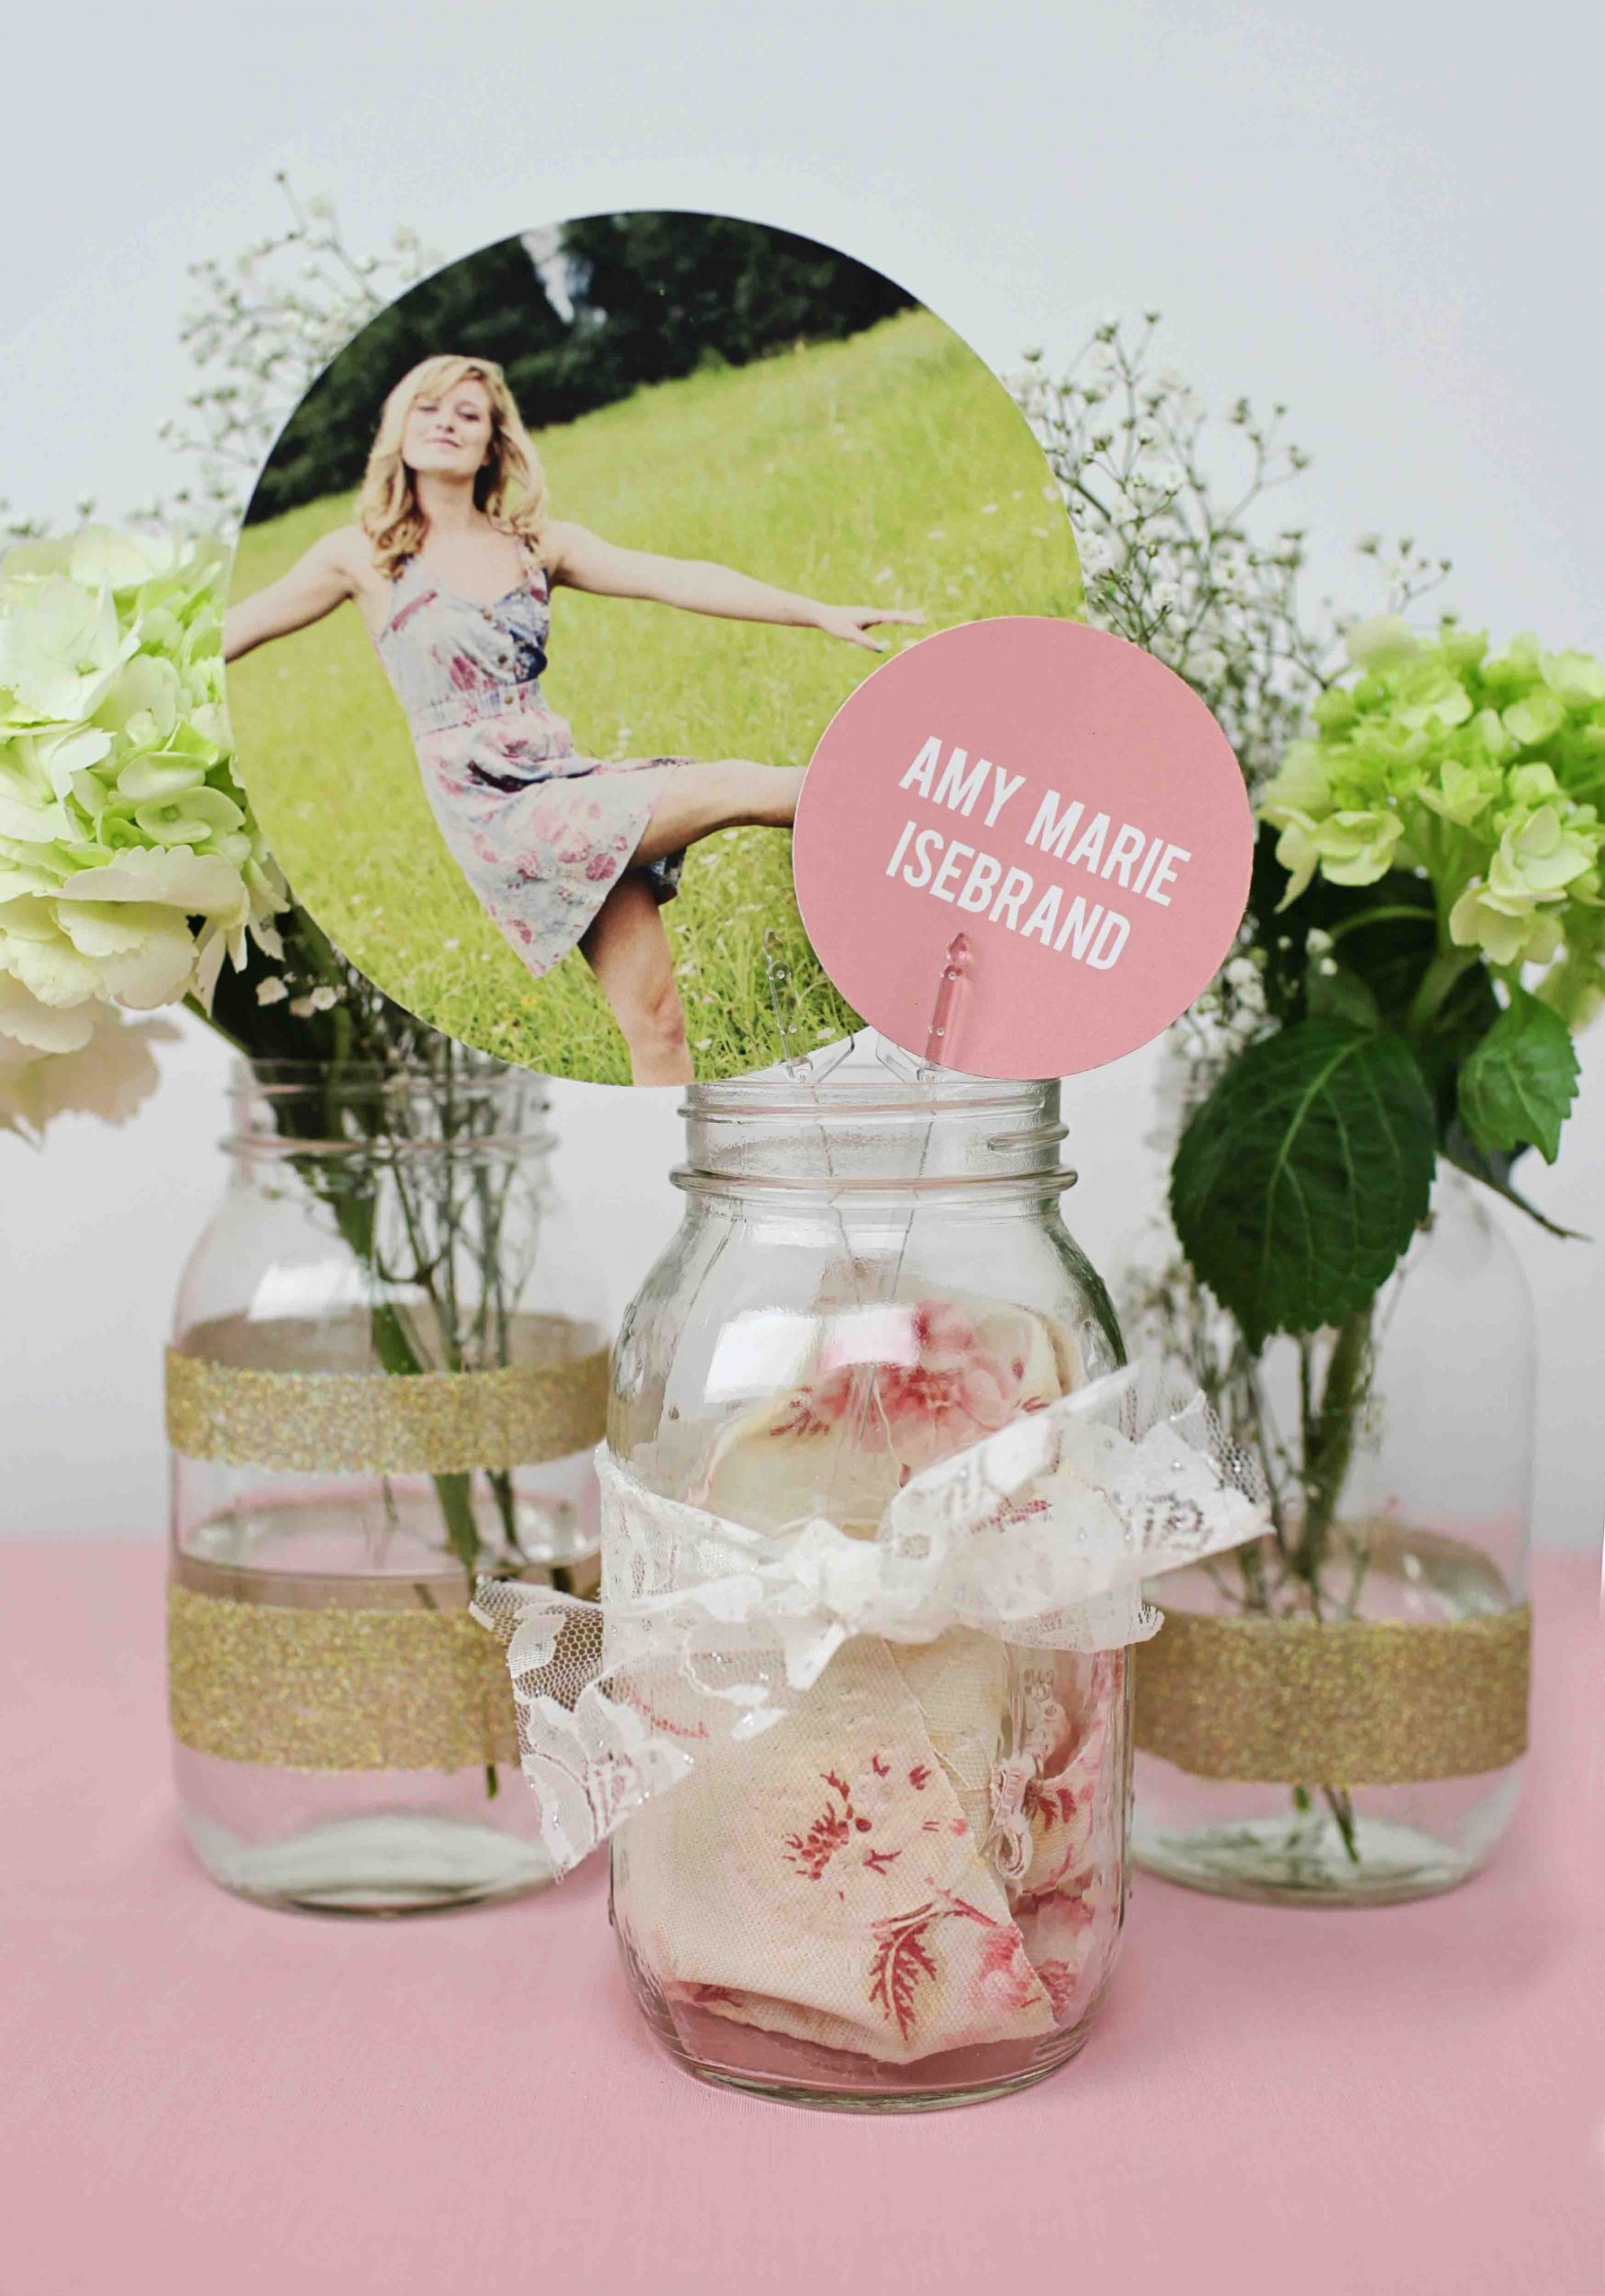 Table Decorations For Graduation Party Ideas  Our Top 5 Graduation Party Decoration Ideas